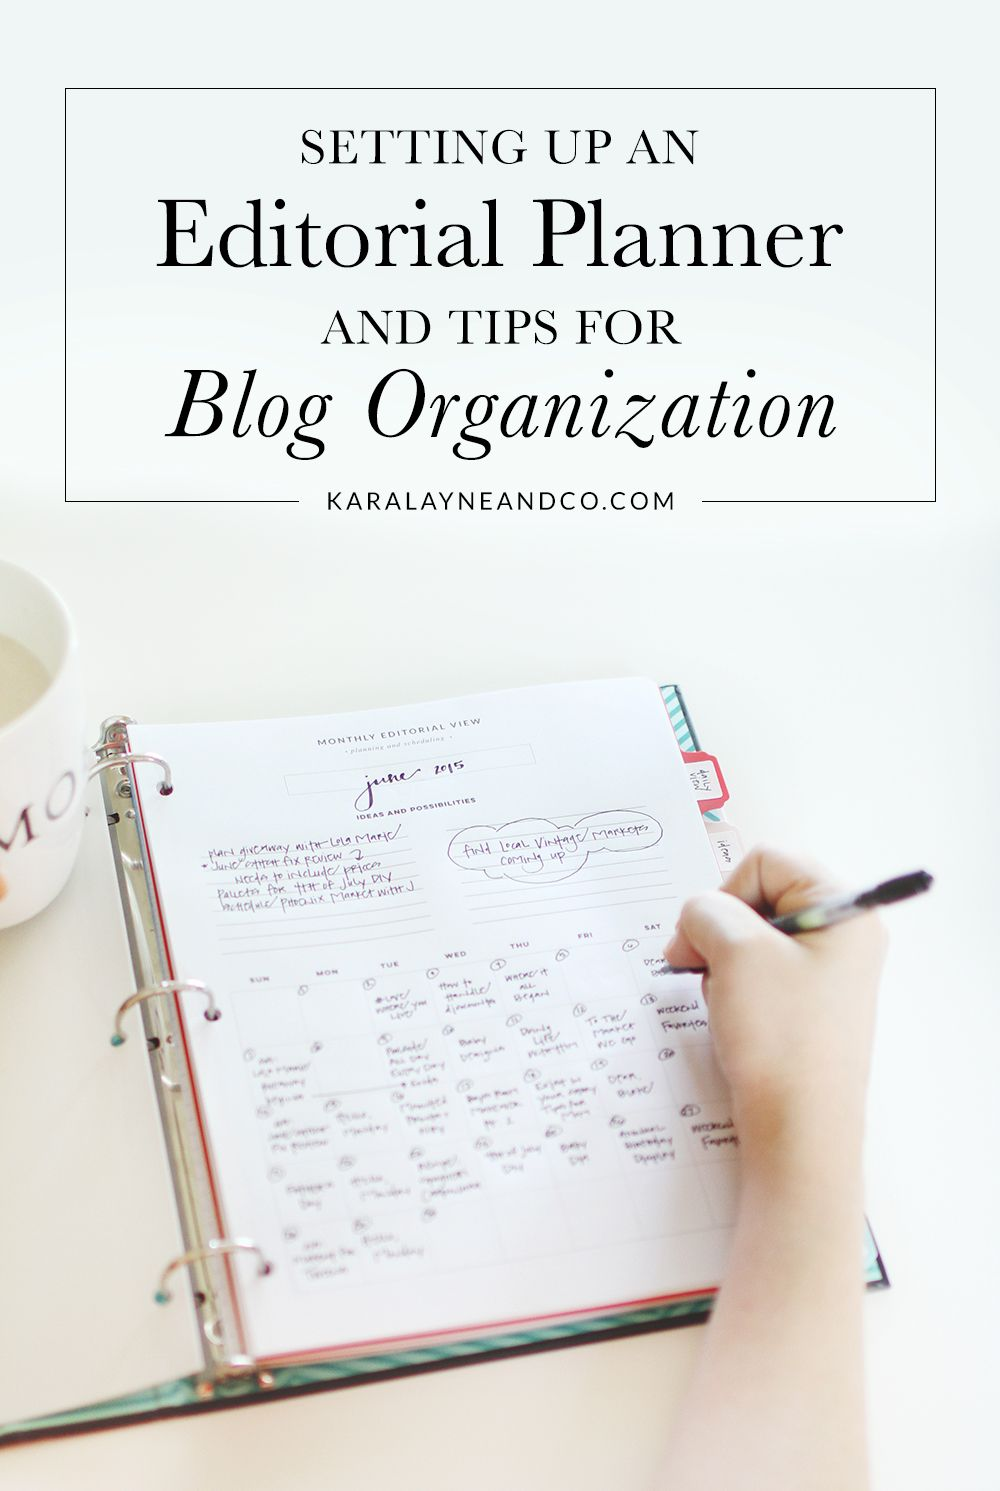 Setting up an editorial planner and tips for blog organization | KaraLayneAndCo.com